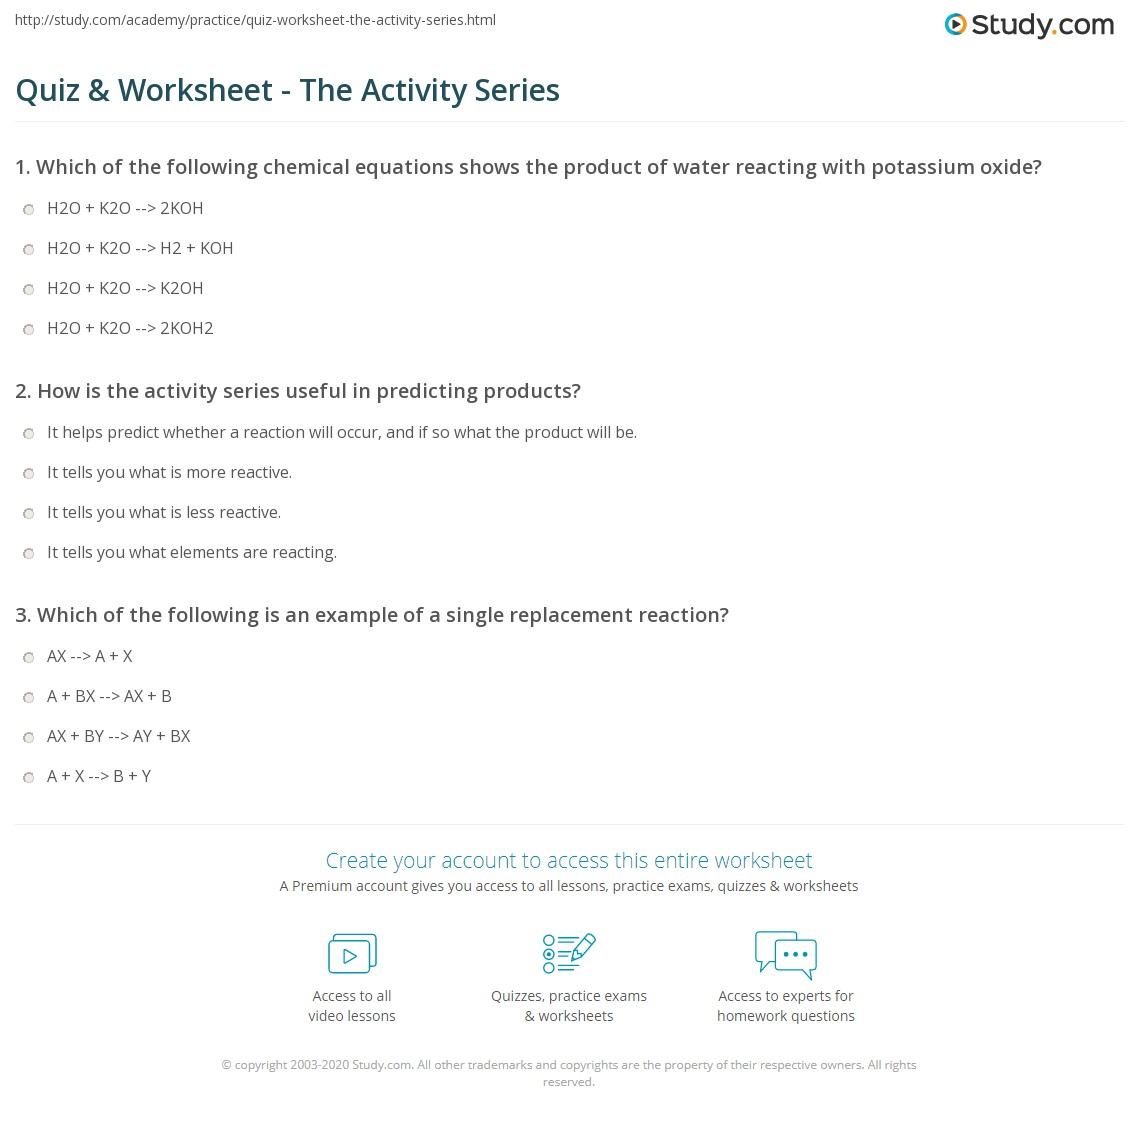 Aldiablosus  Surprising Quiz Amp Worksheet  The Activity Series  Studycom With Extraordinary Print The Activity Series Predicting Products Of Single Displacement Reactions Worksheet With Charming Worksheet On Reproduction In Plants Also Practice Worksheet Exponential Functions In Addition Ure Sound Worksheet And Adding And Subtracting Money Worksheets As Well As Singular And Plural Exercises Worksheet Additionally Free Prek Worksheets From Studycom With Aldiablosus  Extraordinary Quiz Amp Worksheet  The Activity Series  Studycom With Charming Print The Activity Series Predicting Products Of Single Displacement Reactions Worksheet And Surprising Worksheet On Reproduction In Plants Also Practice Worksheet Exponential Functions In Addition Ure Sound Worksheet From Studycom